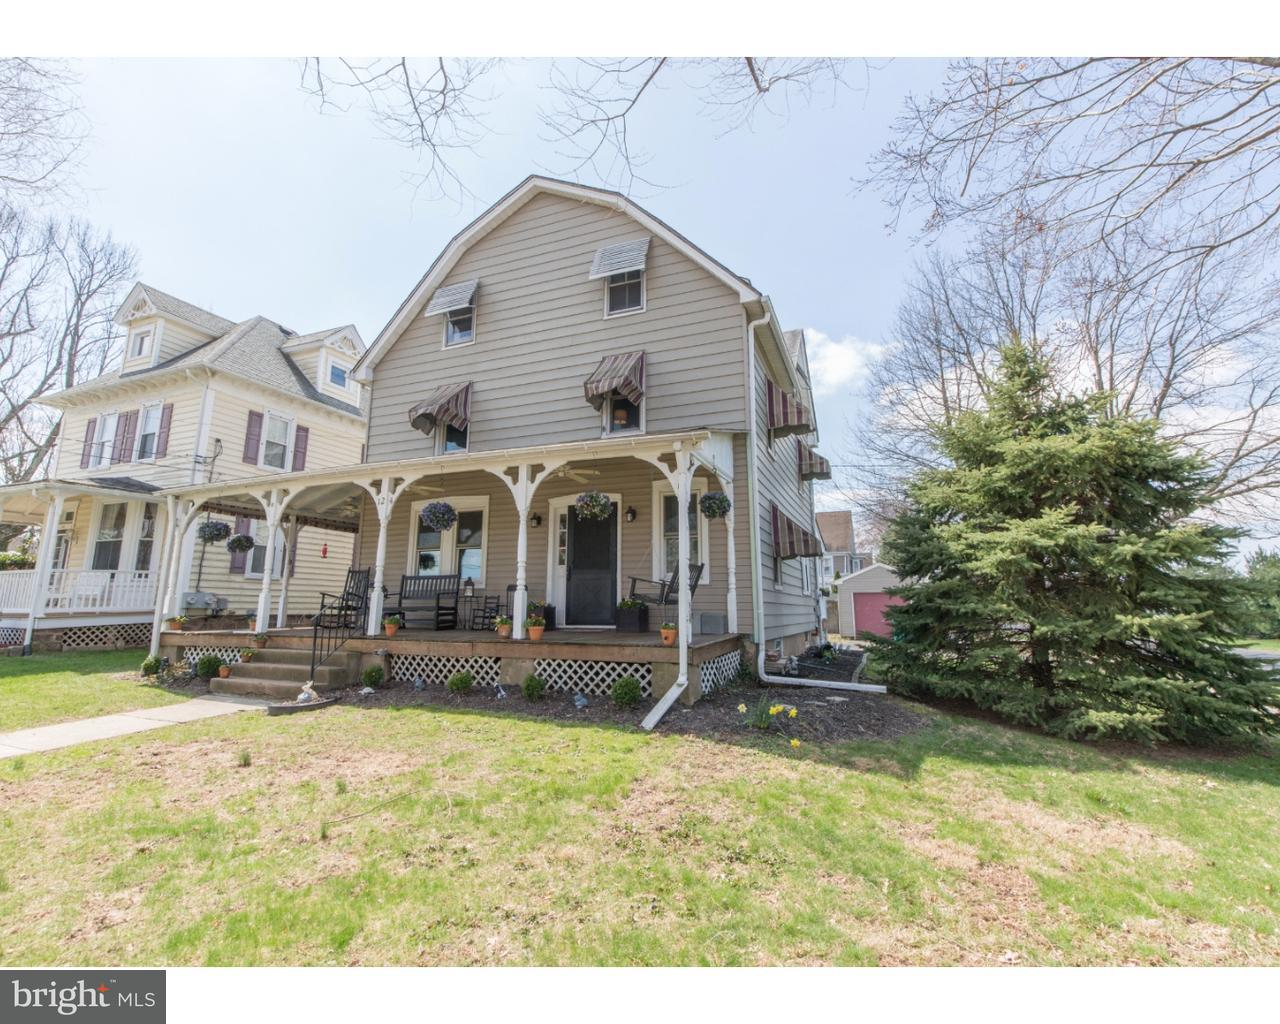 124 LINCOLN AVE, WARMINSTER - Listed at $349,900, WARMINSTER